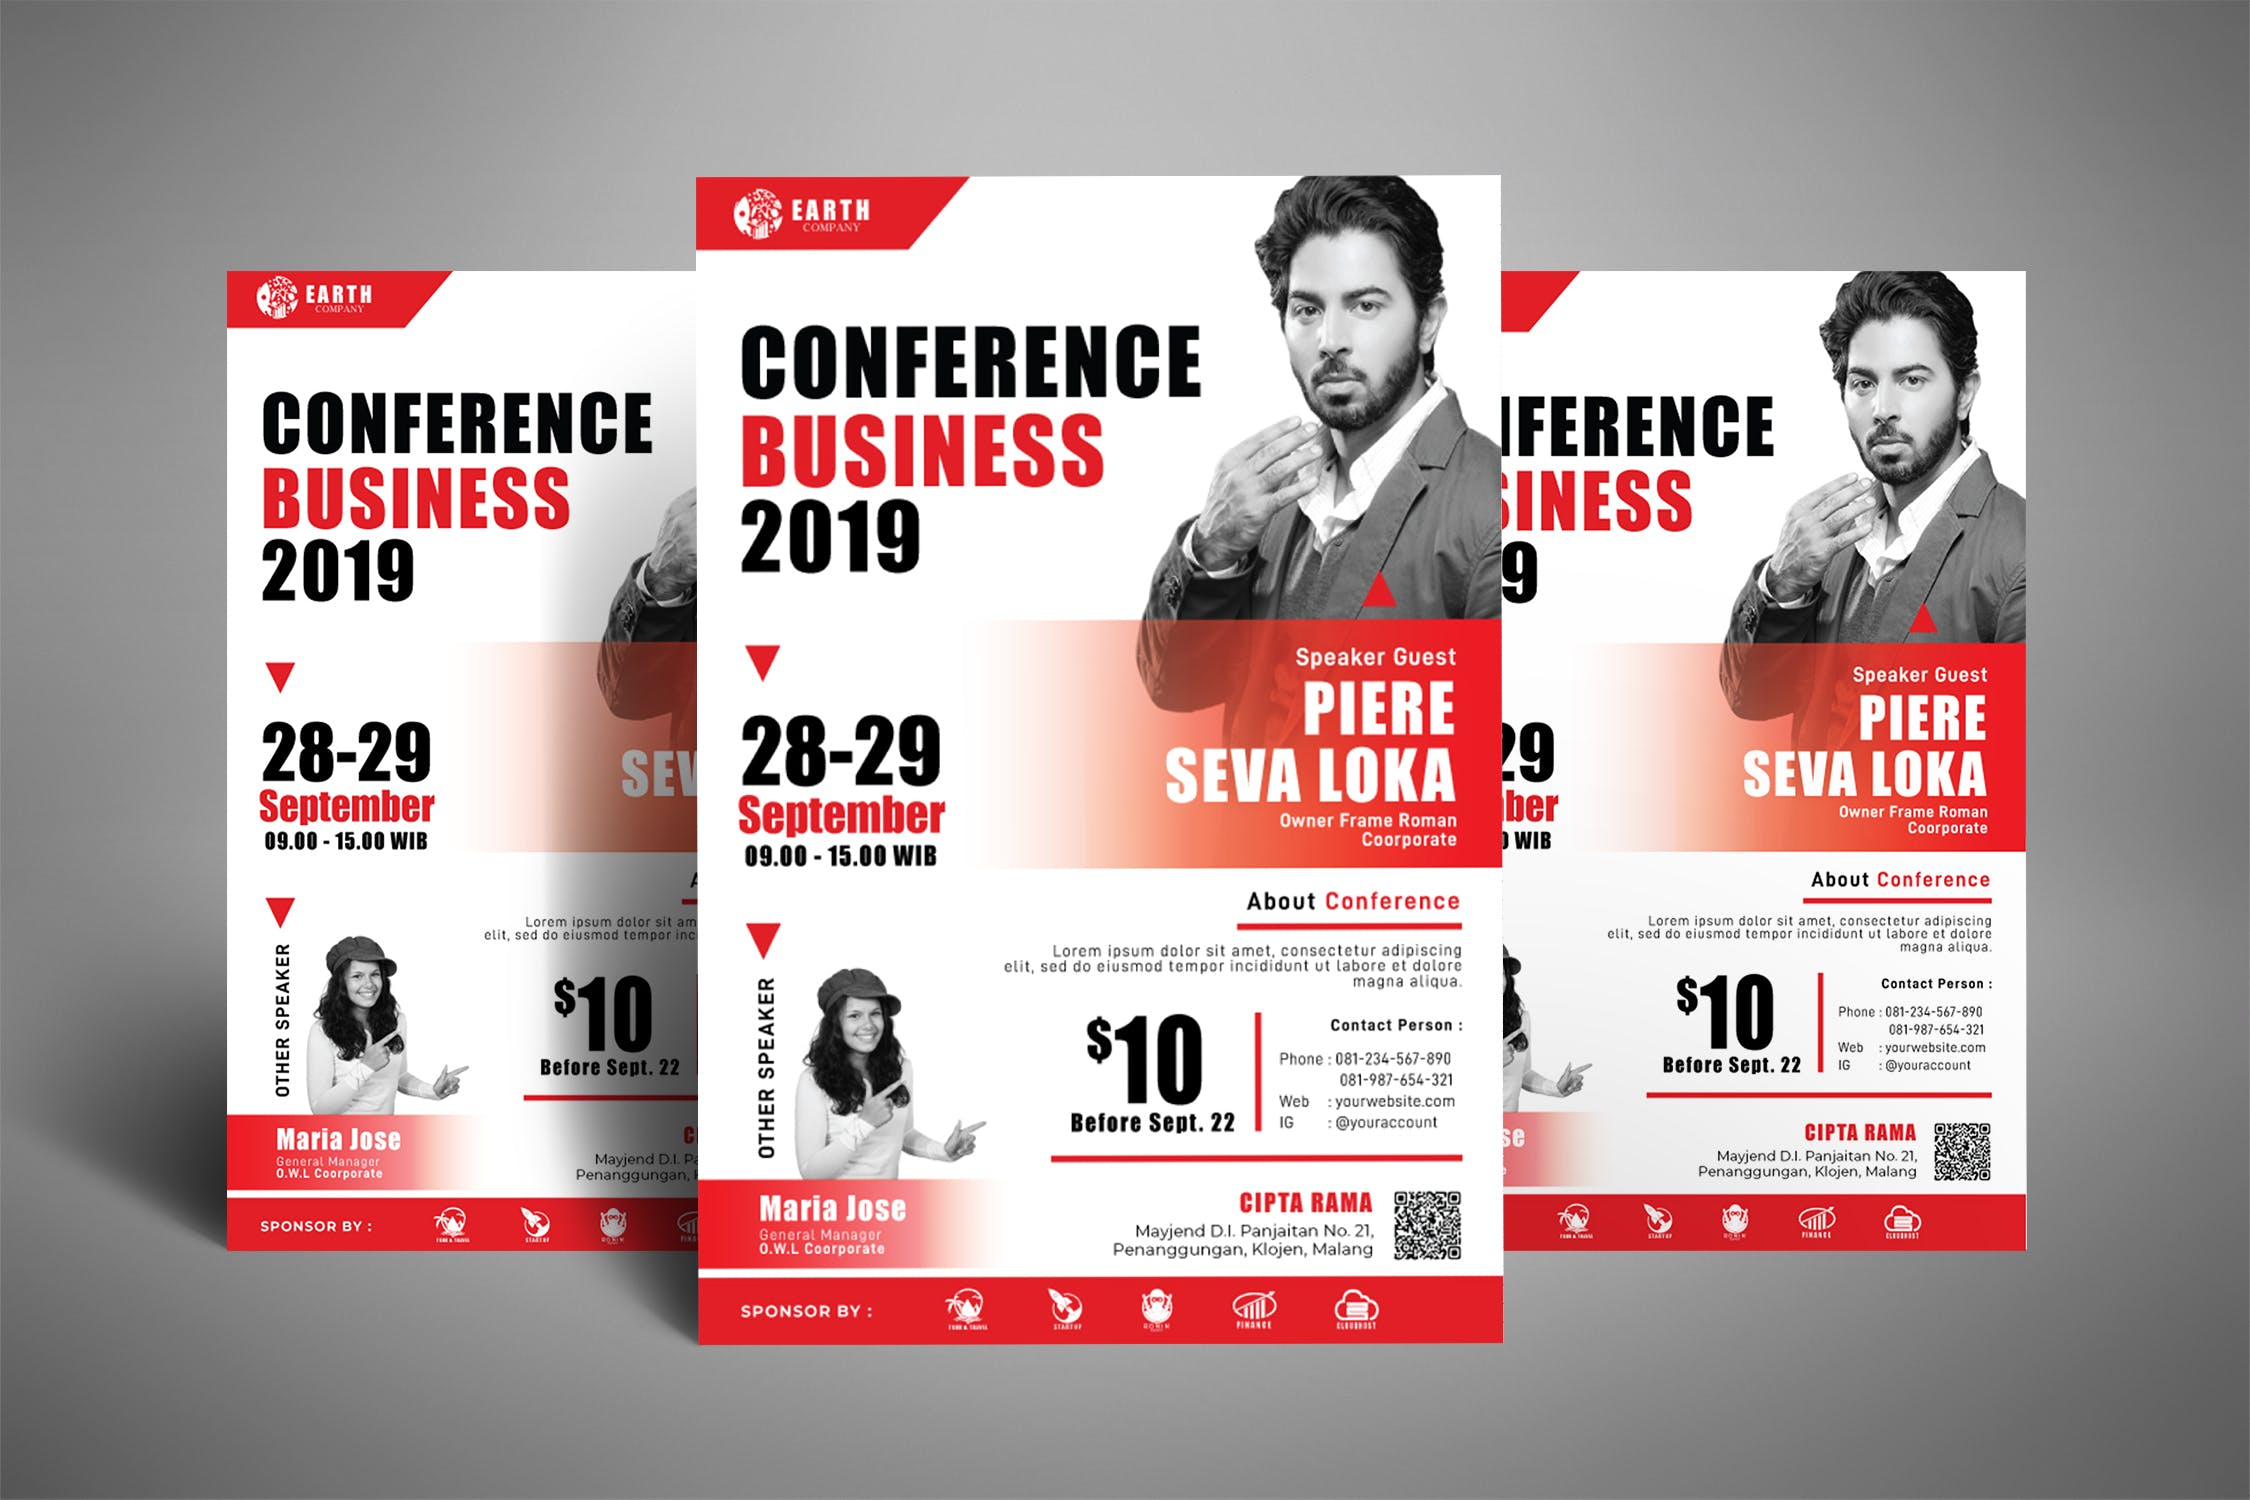 Business Conference Seminar Poster By Yip87 On Envato Elements